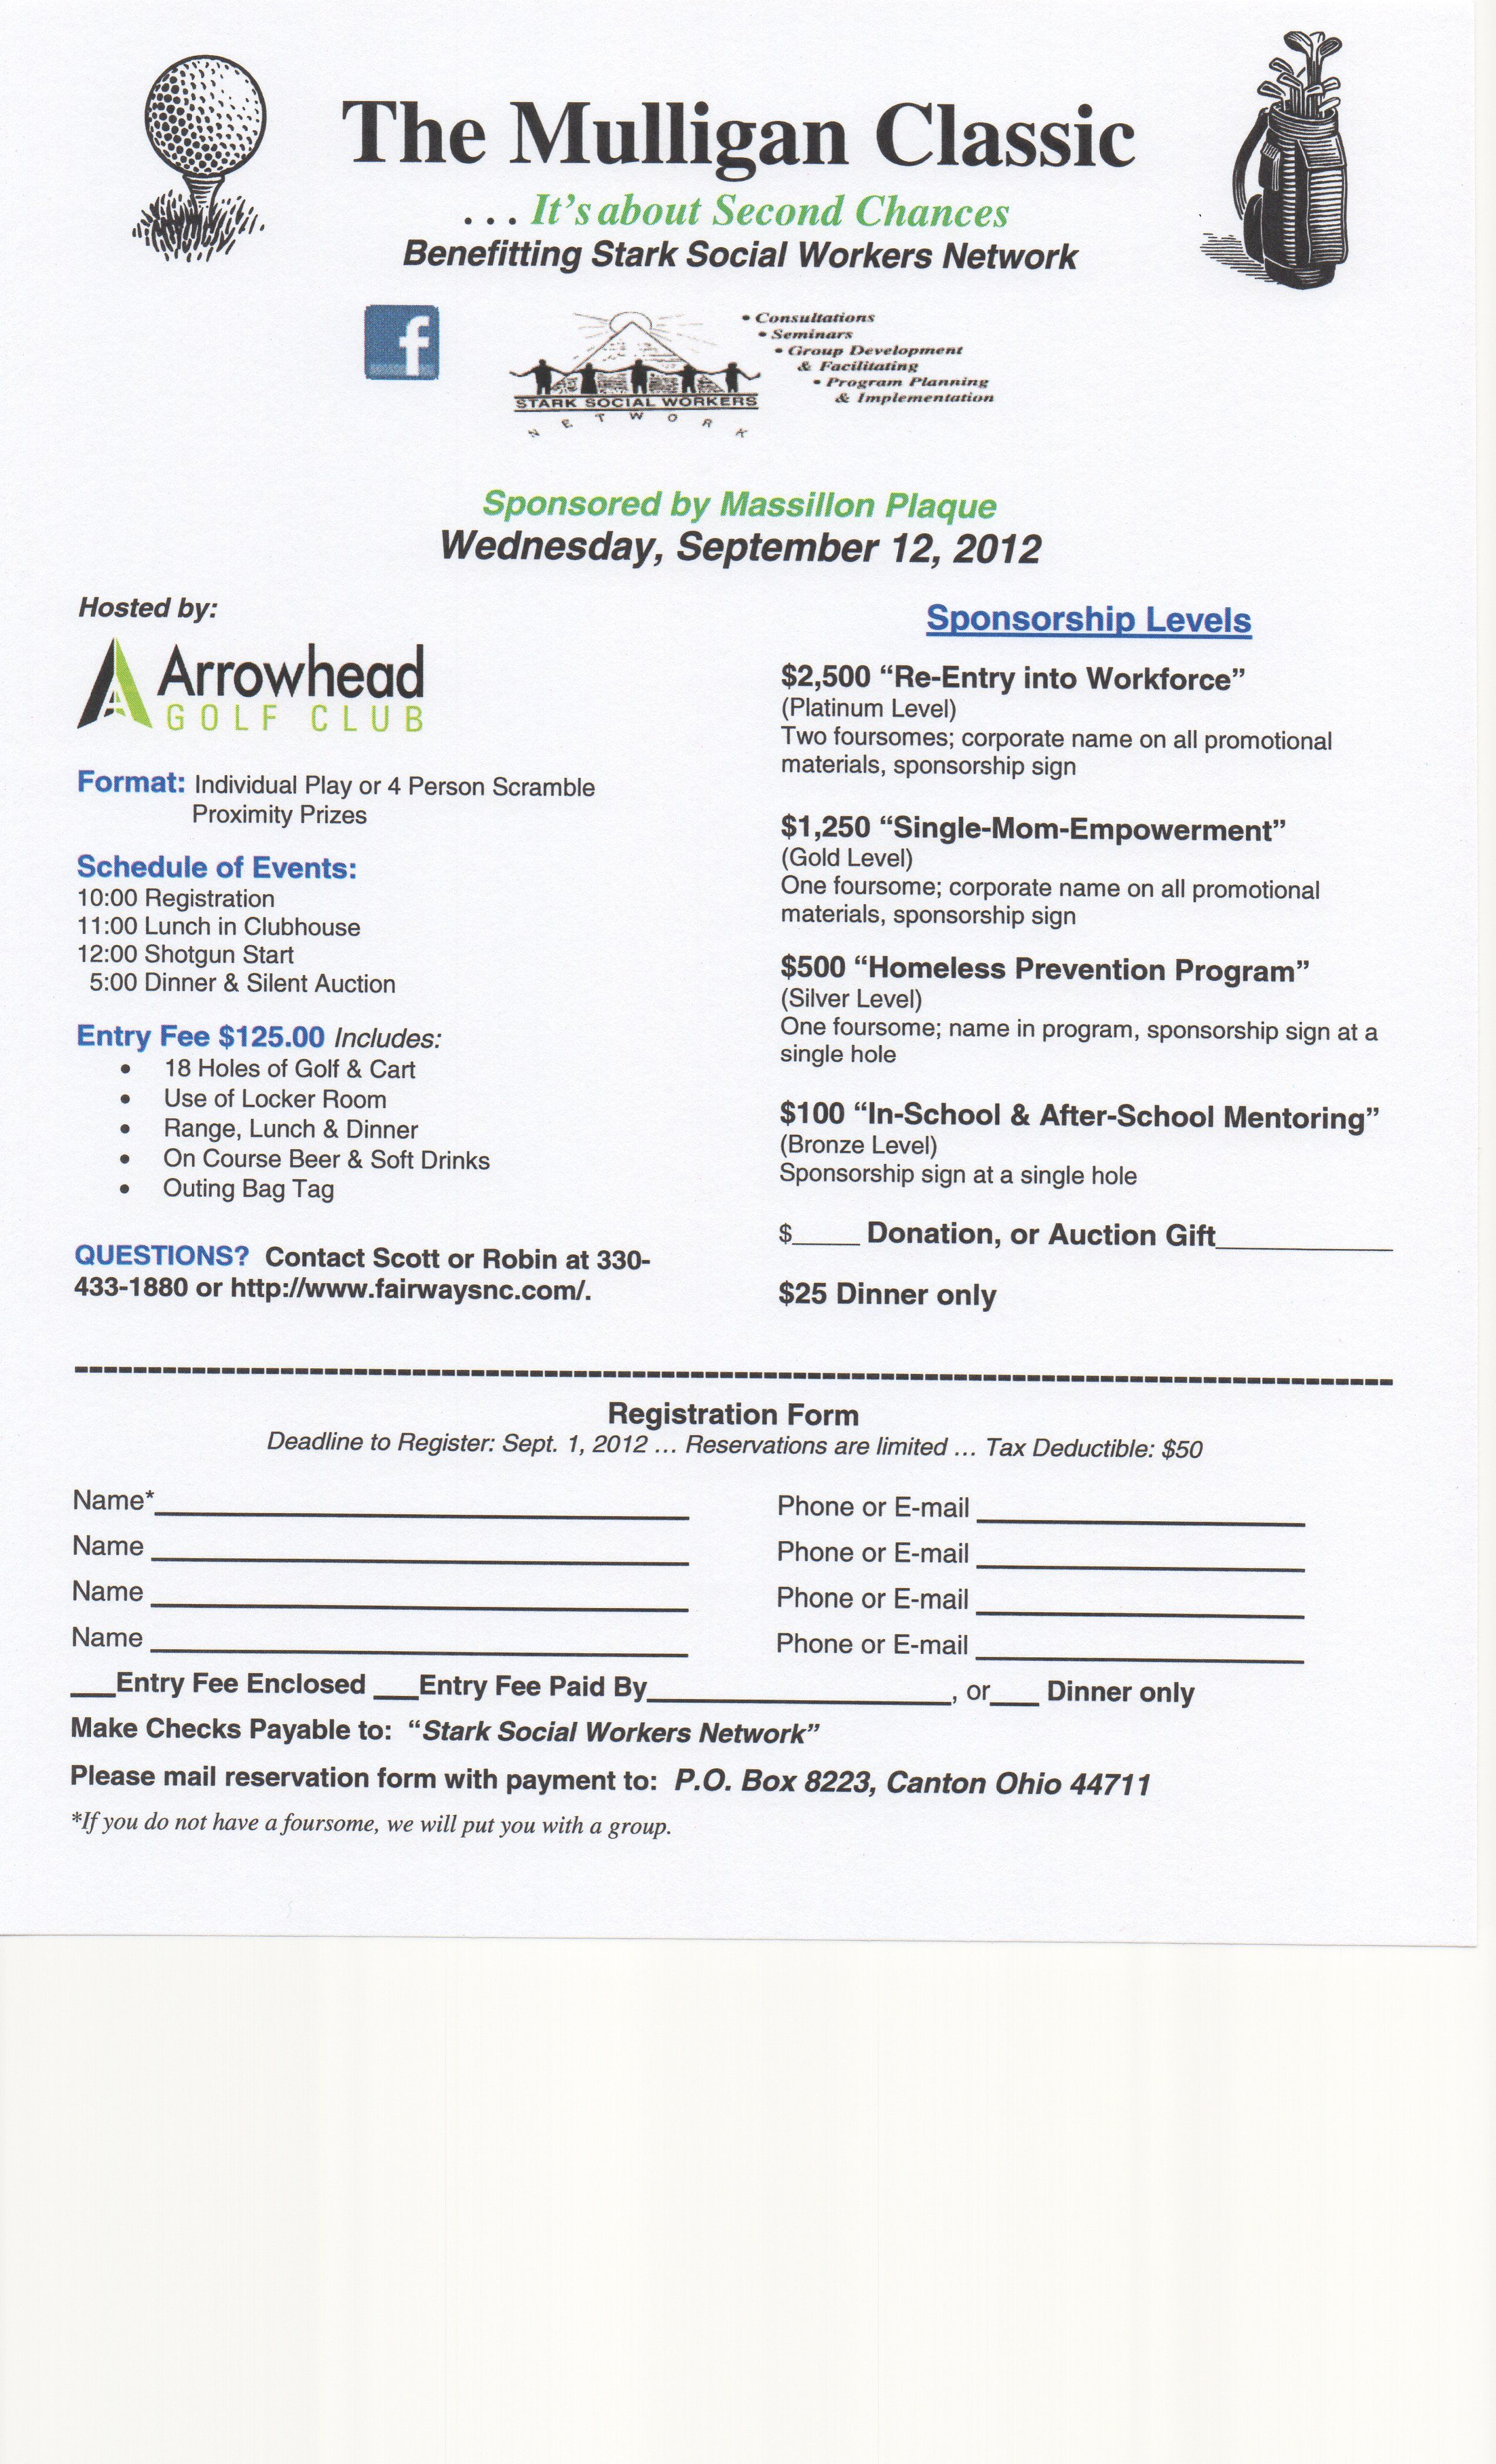 Golf tournament Sponsorship Letter Template - I M On A Mittee Planning something Called the Mulligan Classic